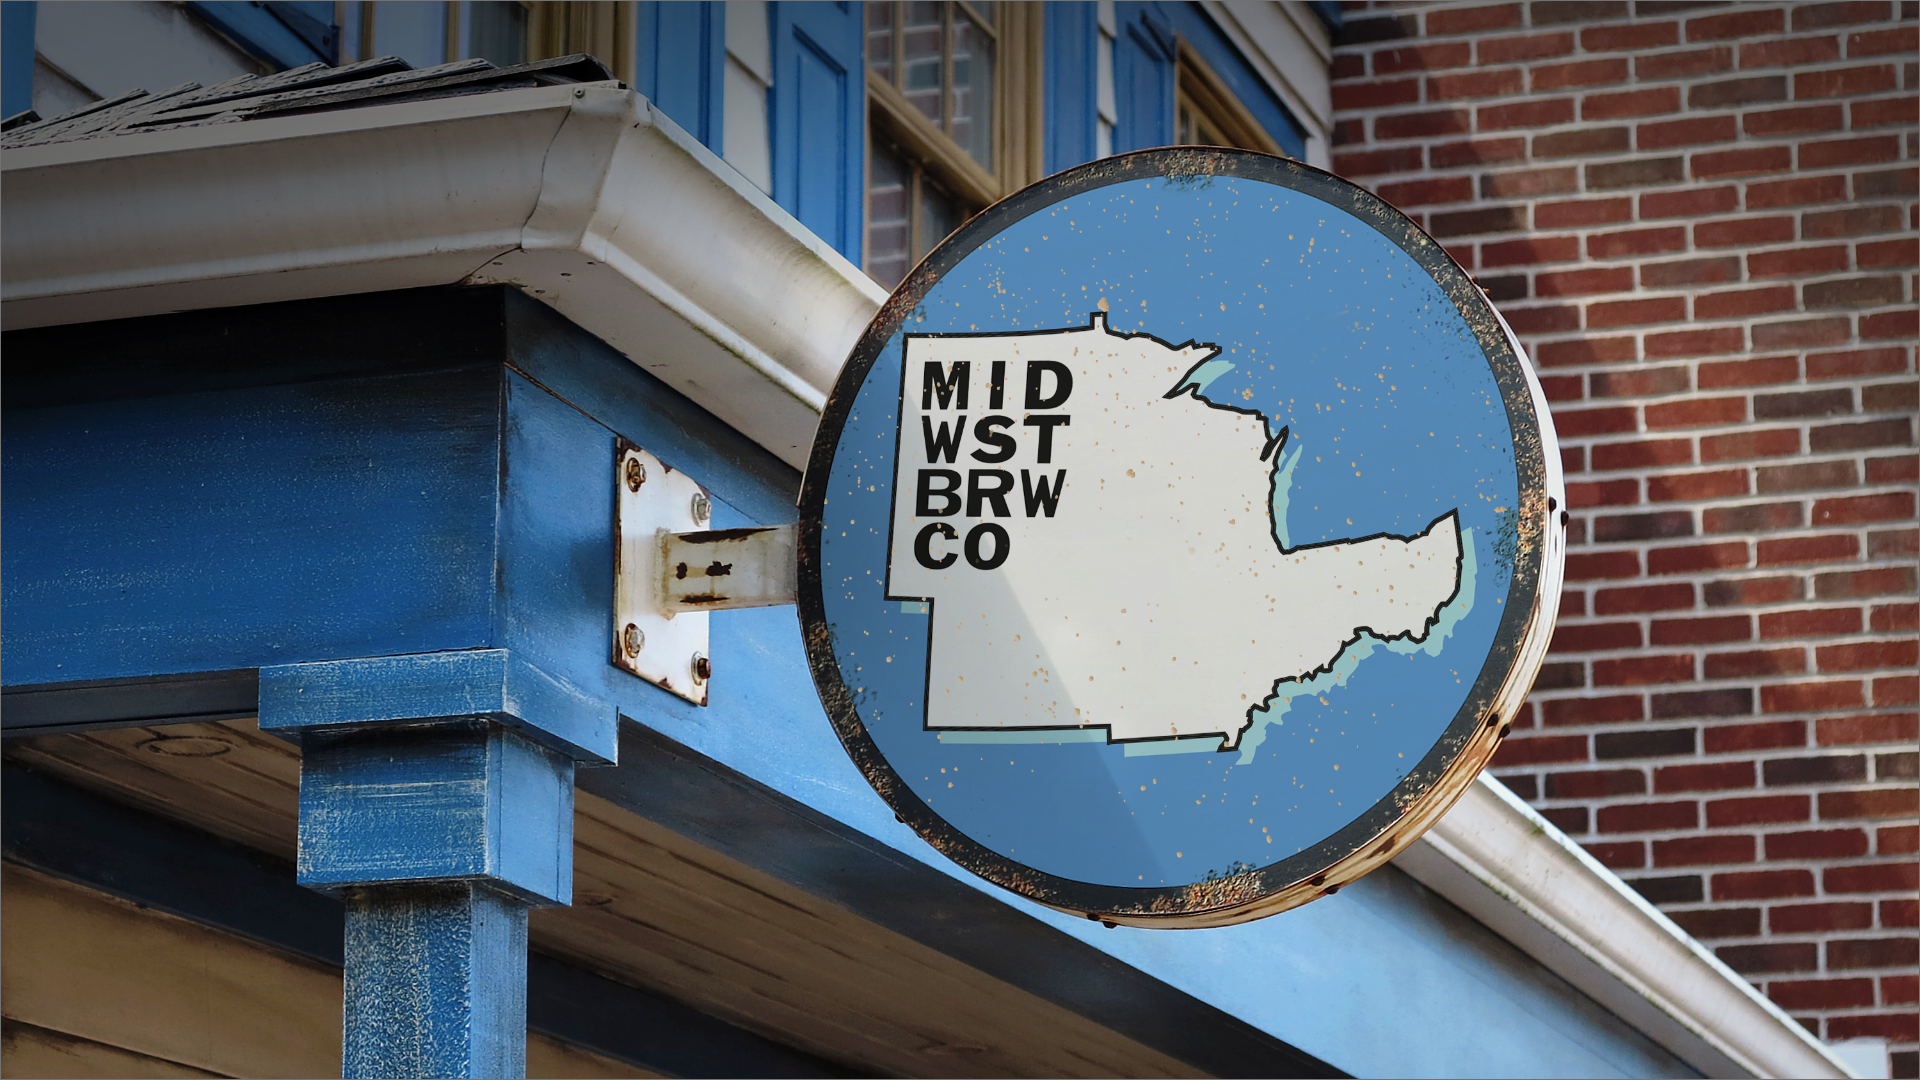 Signs_pub_midwest